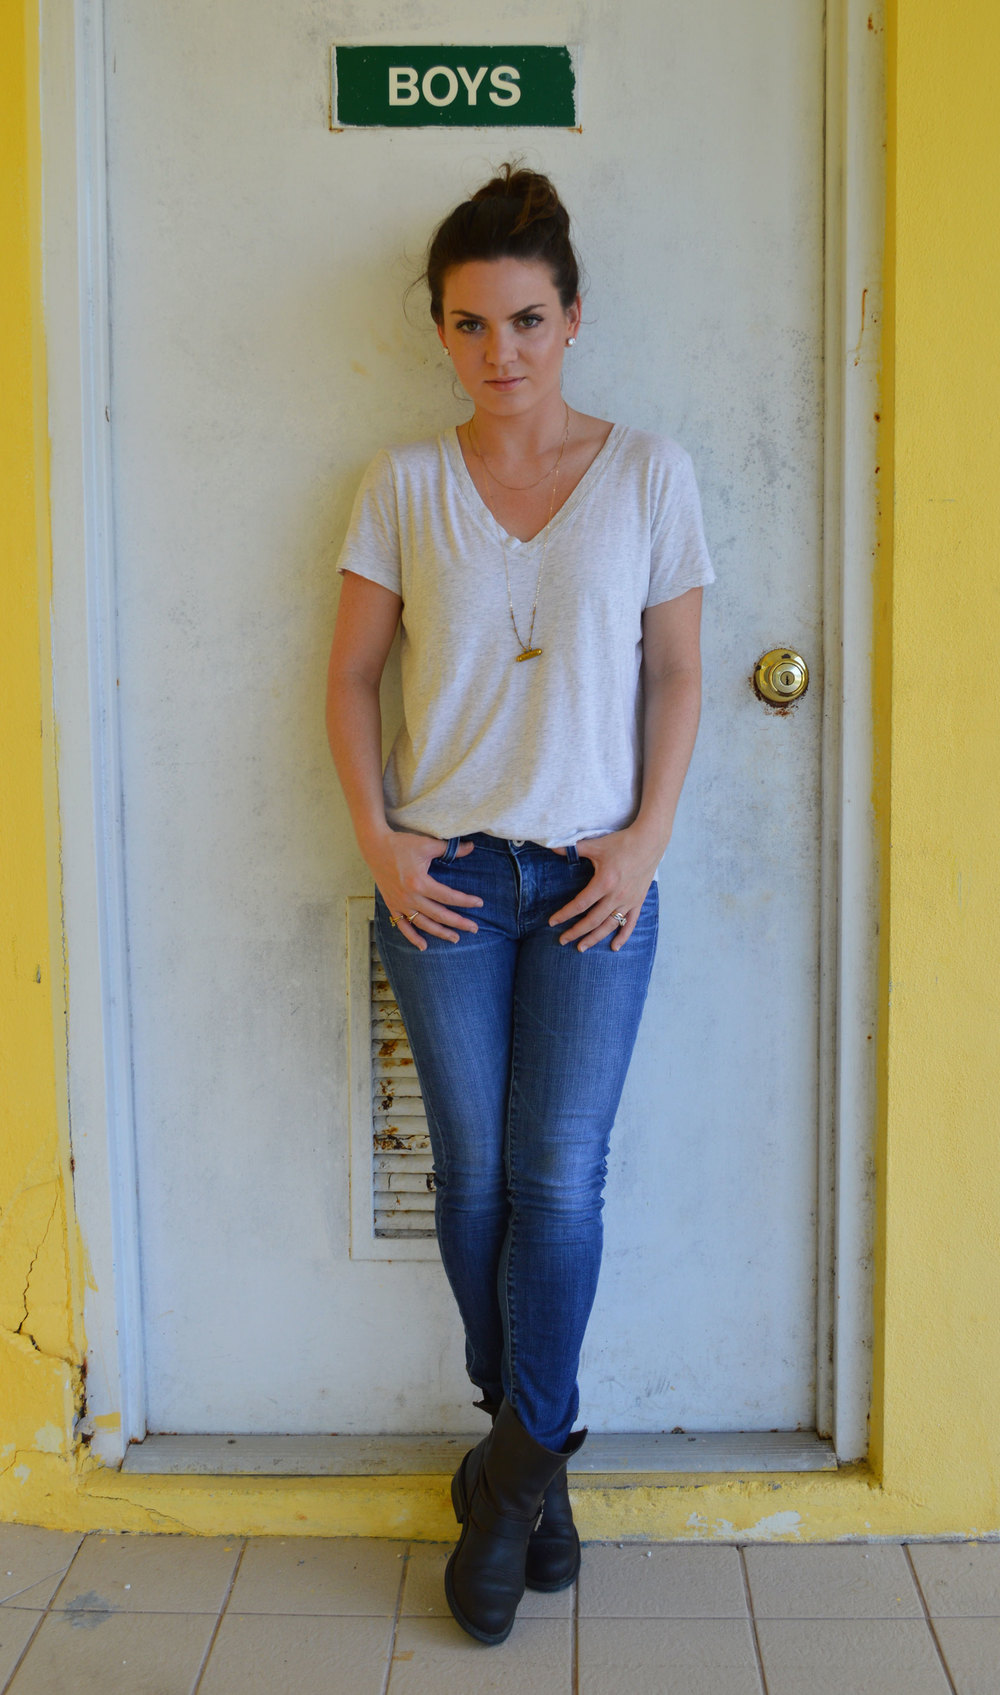 forever21-ag-jeans-boys-simple-t-shirt-crafts-and-love-necklace-style-blogger-nassau-bahamas.jpeg